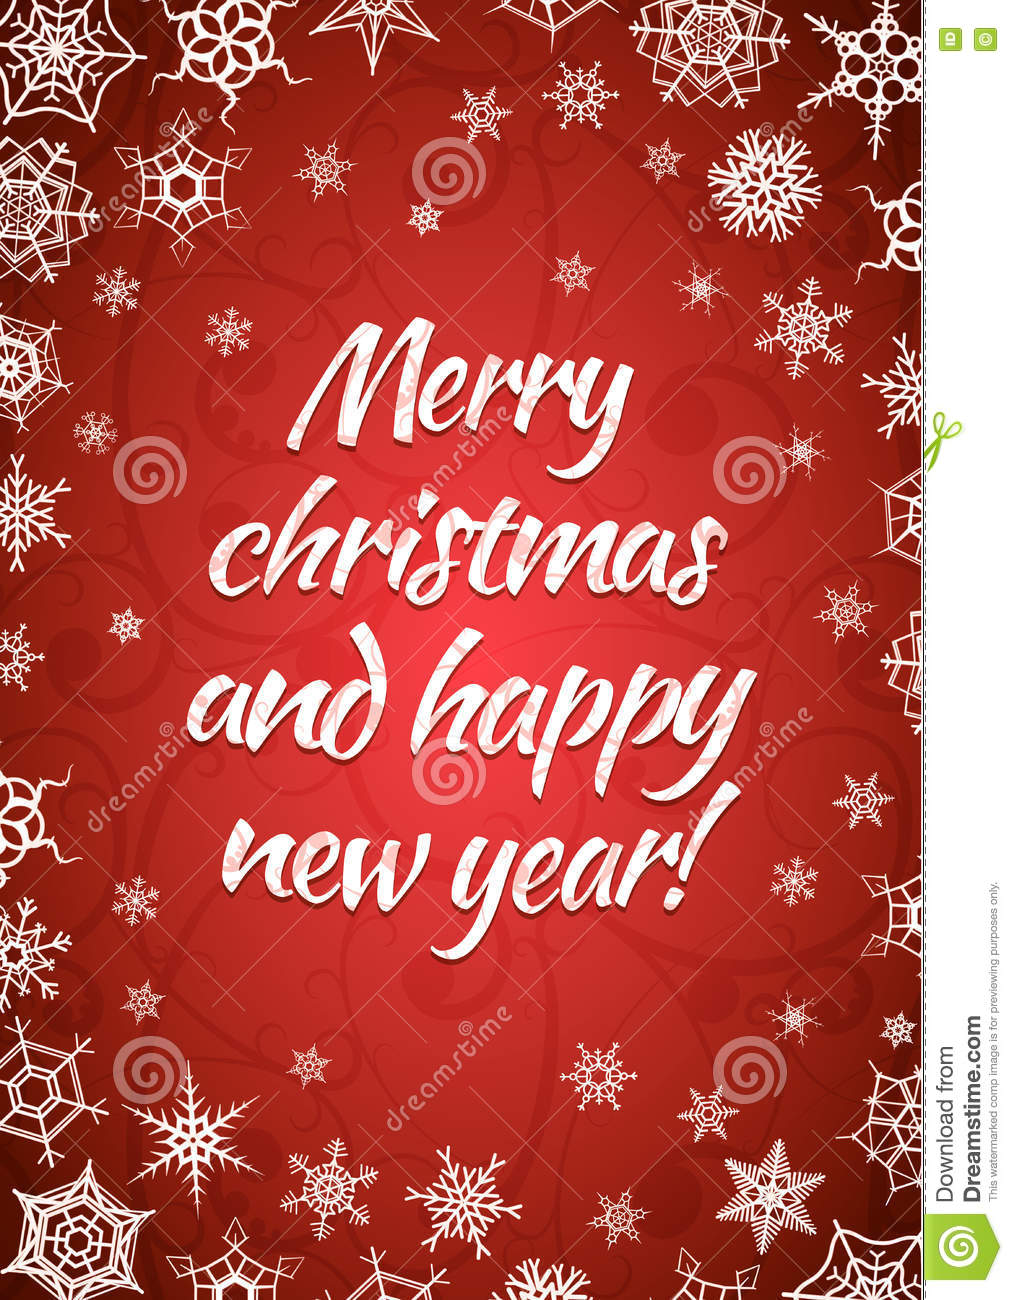 Merry Christmas And Happy New Year, Red Greeting Card, Vertical ...